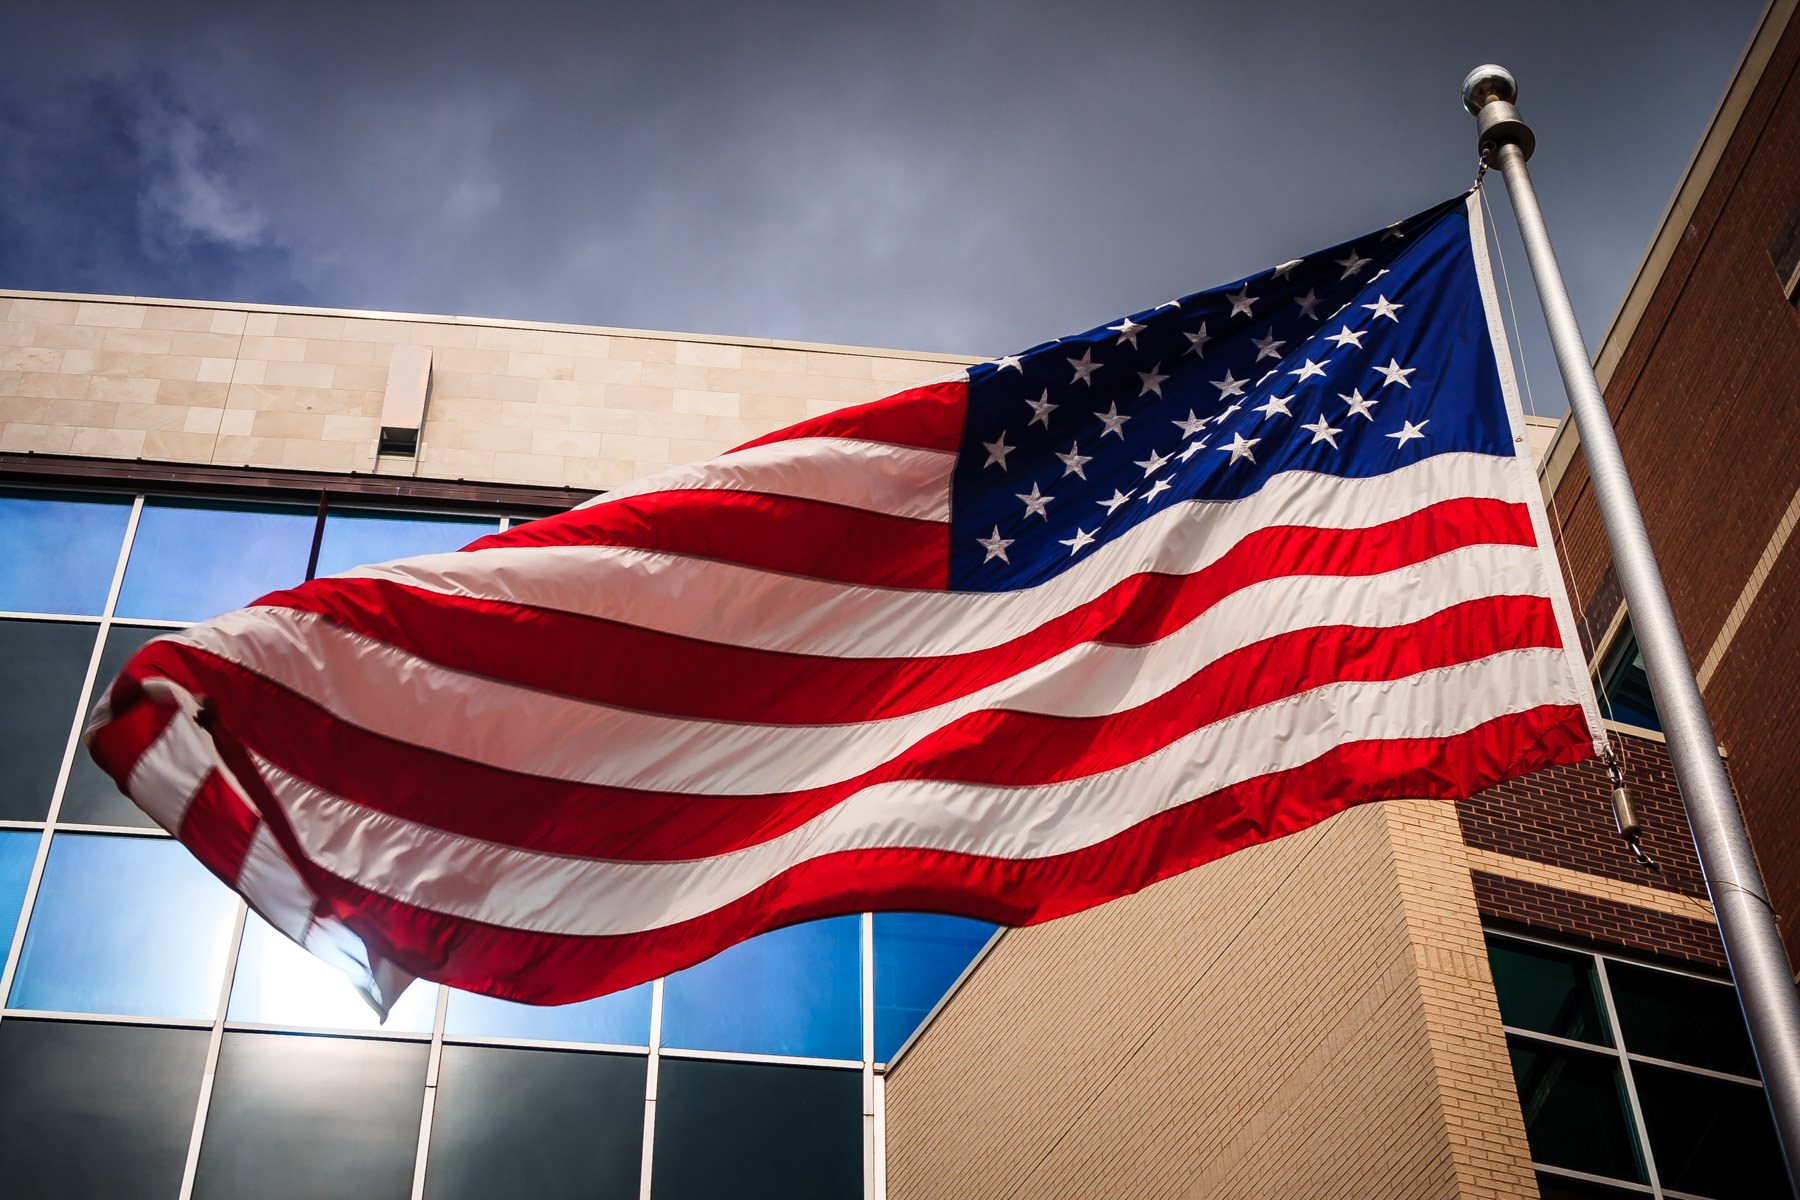 An American flag waves in the wind outside the Dallas Police Department Headquarters in The Cedars, Dallas, Texas.